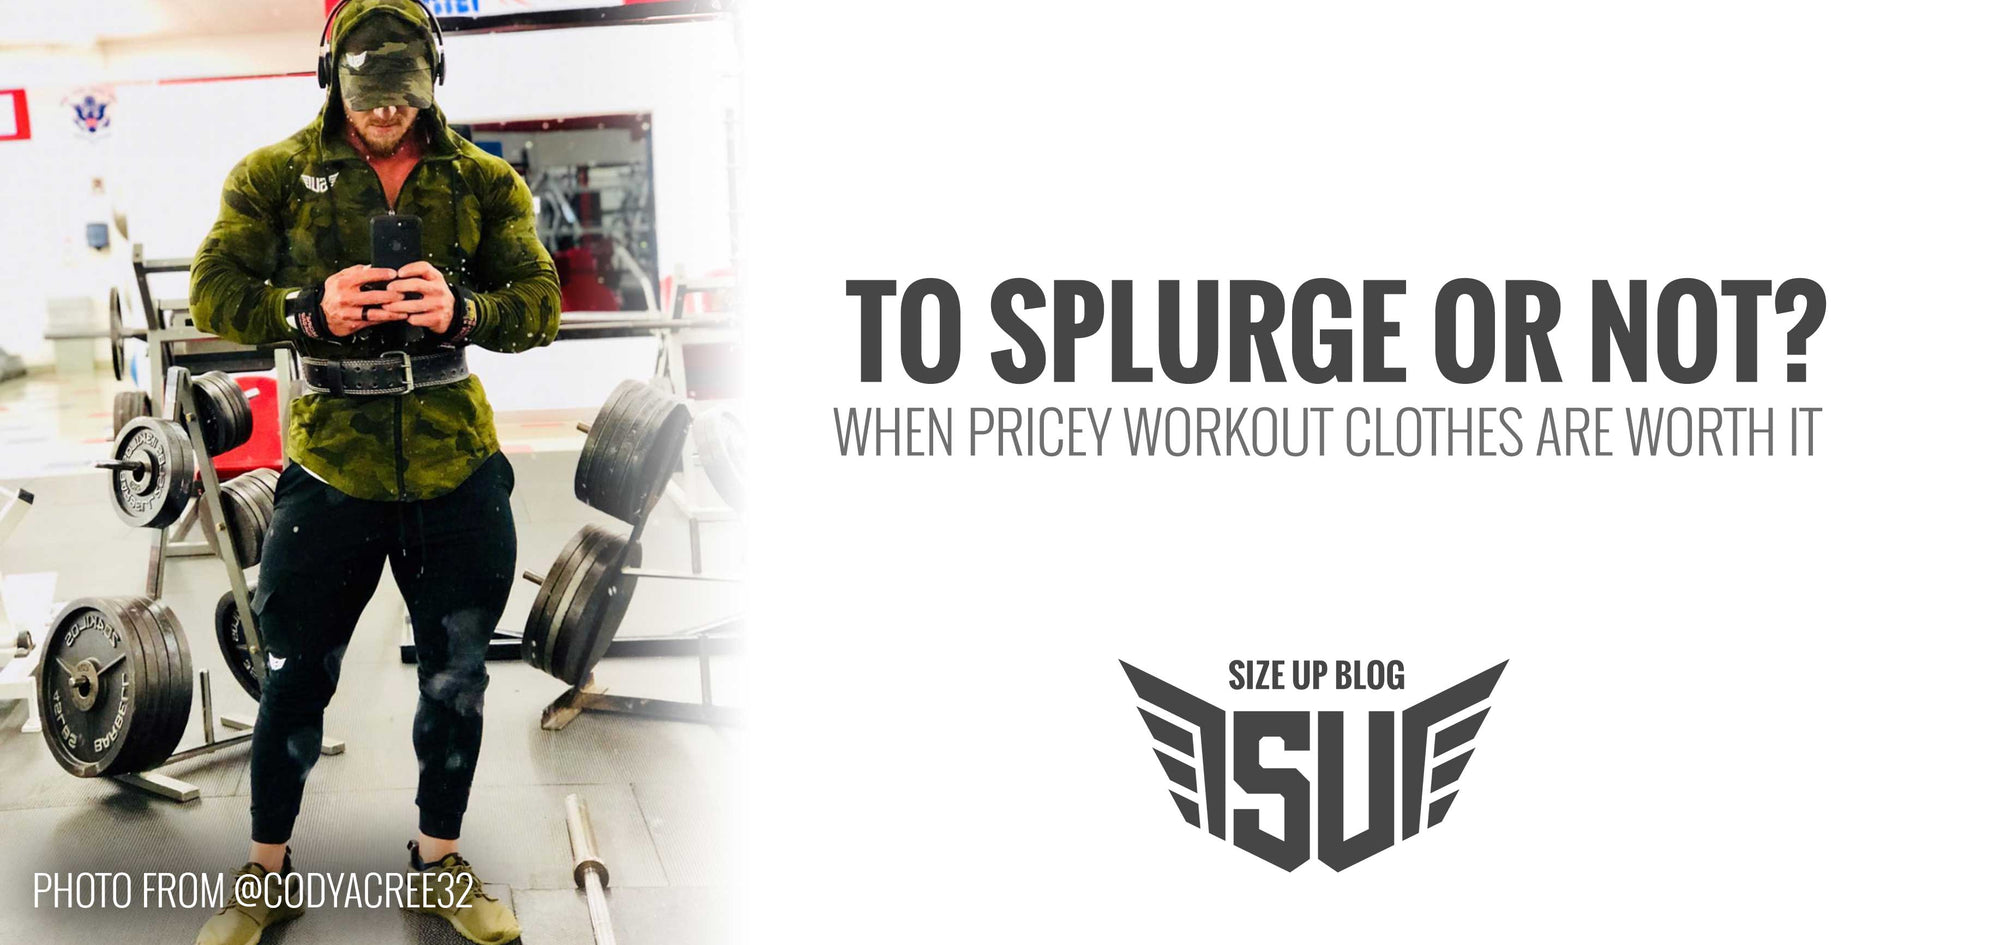 To Splurge or Not? When Pricey Workout Clothes Are Worth It